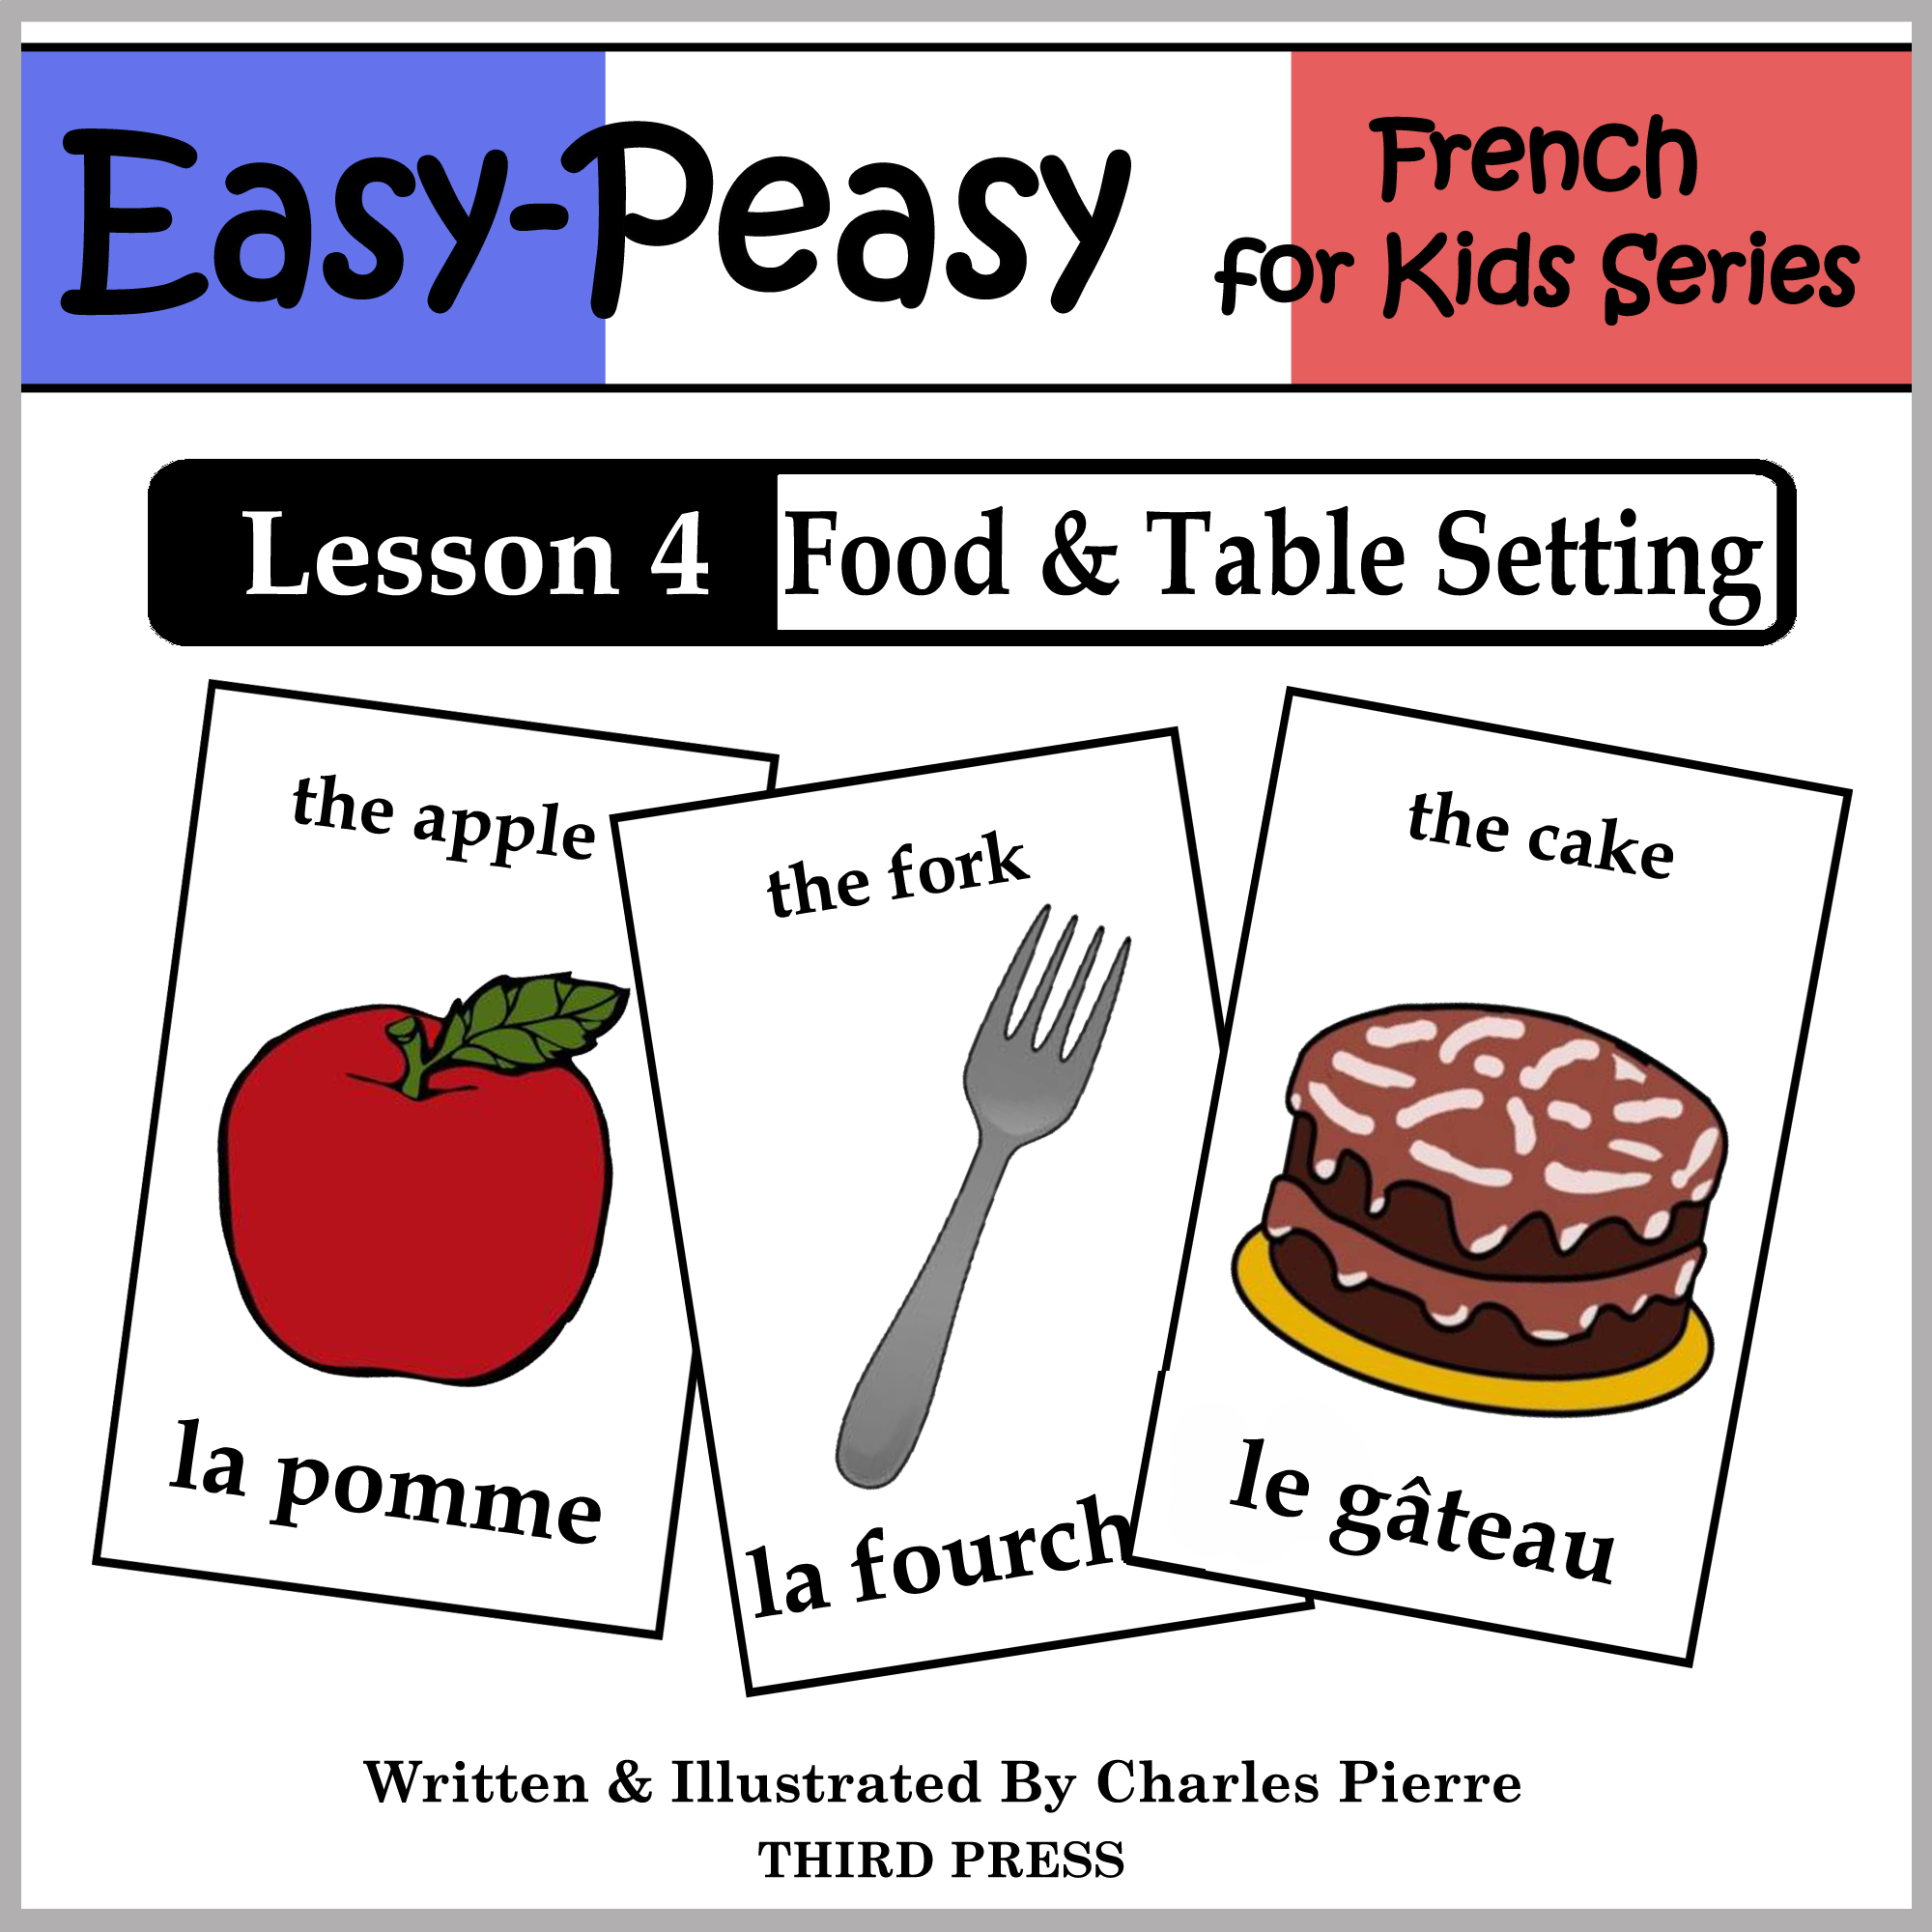 French Lesson 4: Food & Table Setting